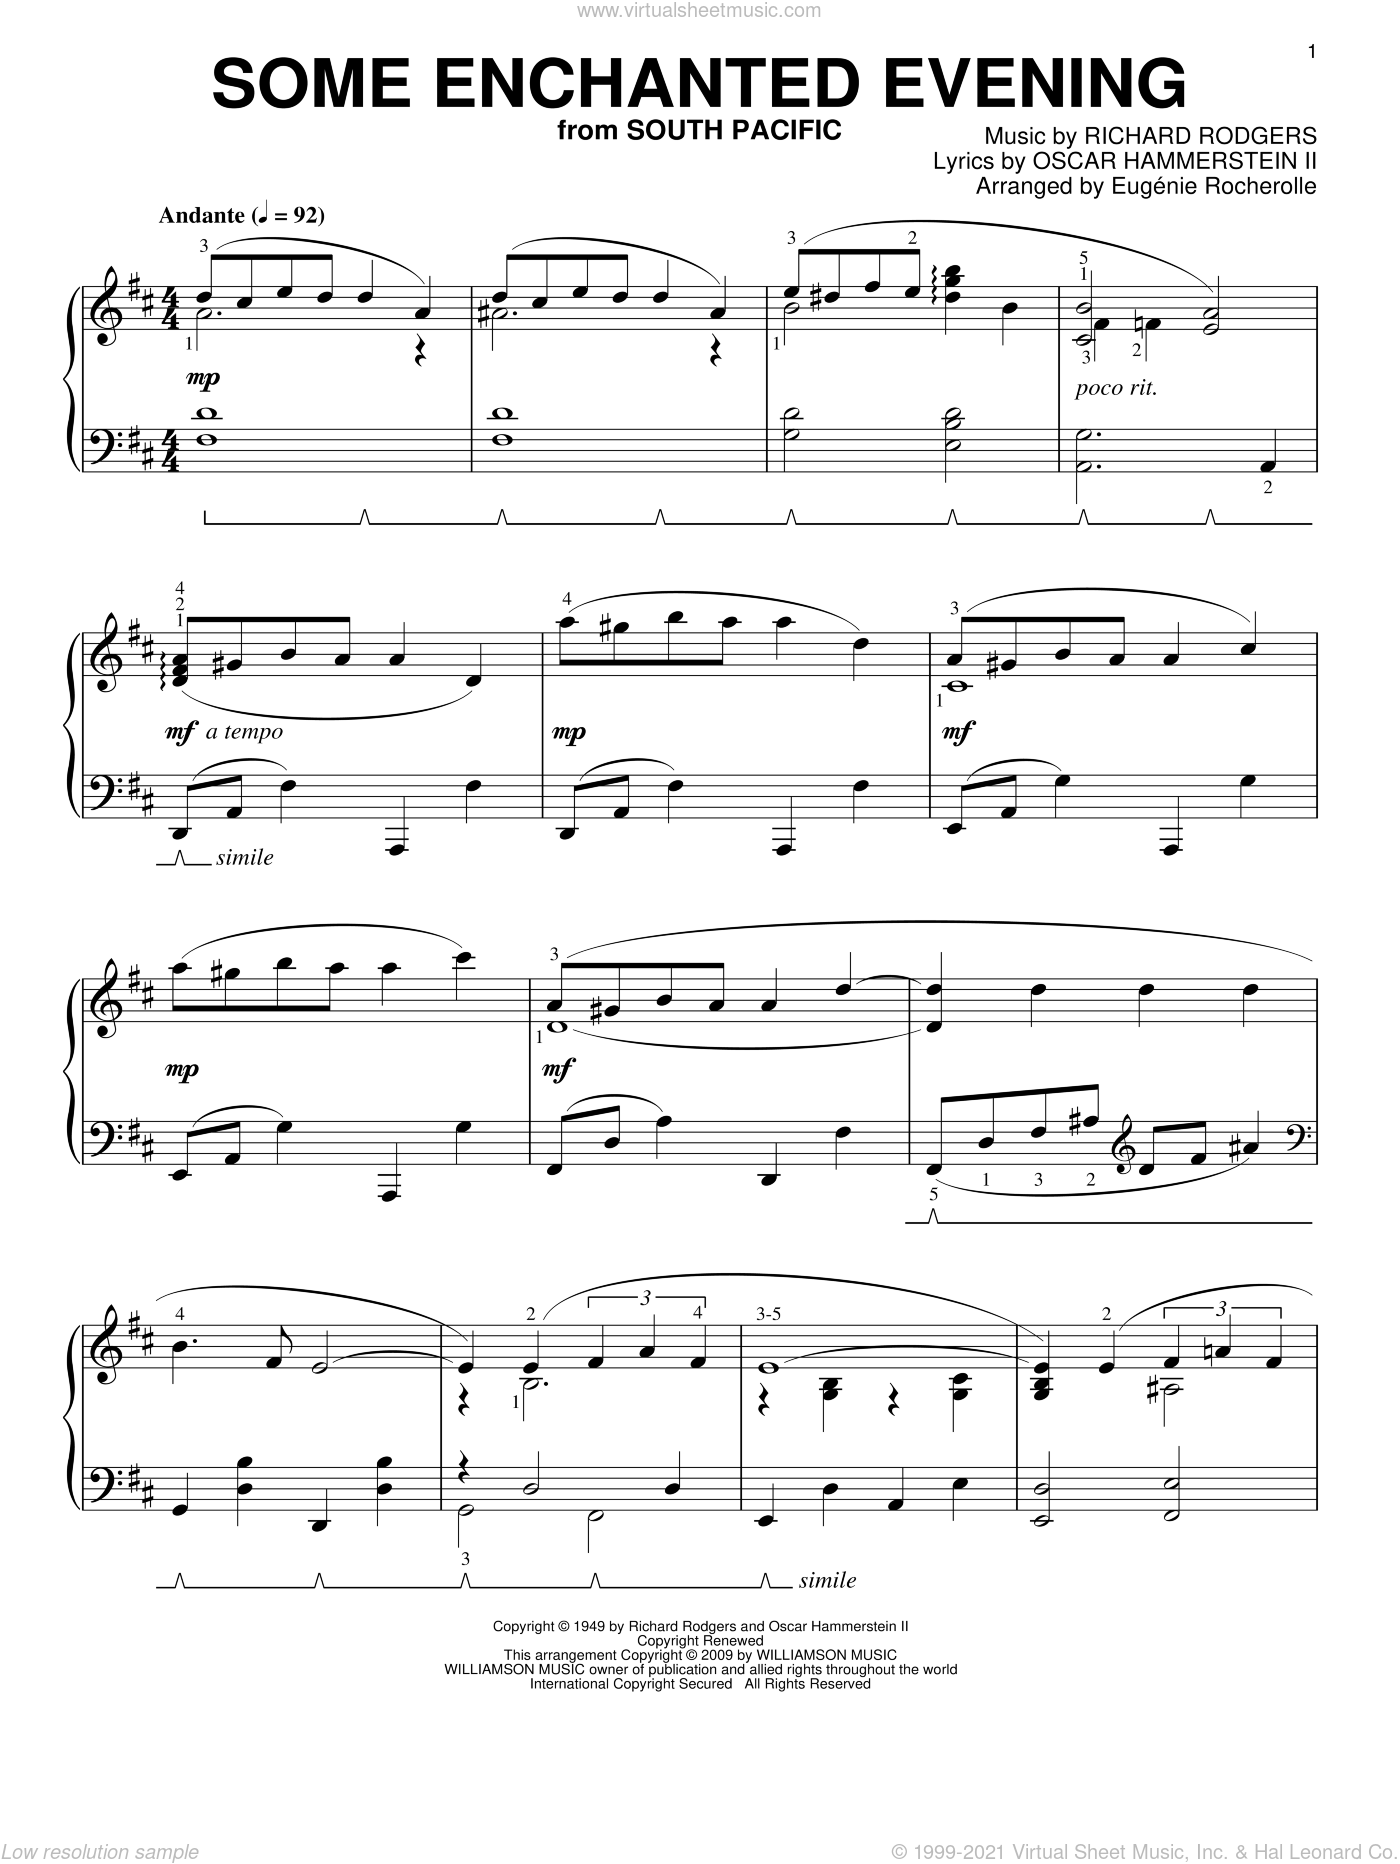 Some Enchanted Evening sheet music for piano solo by Rodgers & Hammerstein, Eugenie Rocherolle, South Pacific (Musical), Oscar II Hammerstein and Richard Rodgers, intermediate skill level